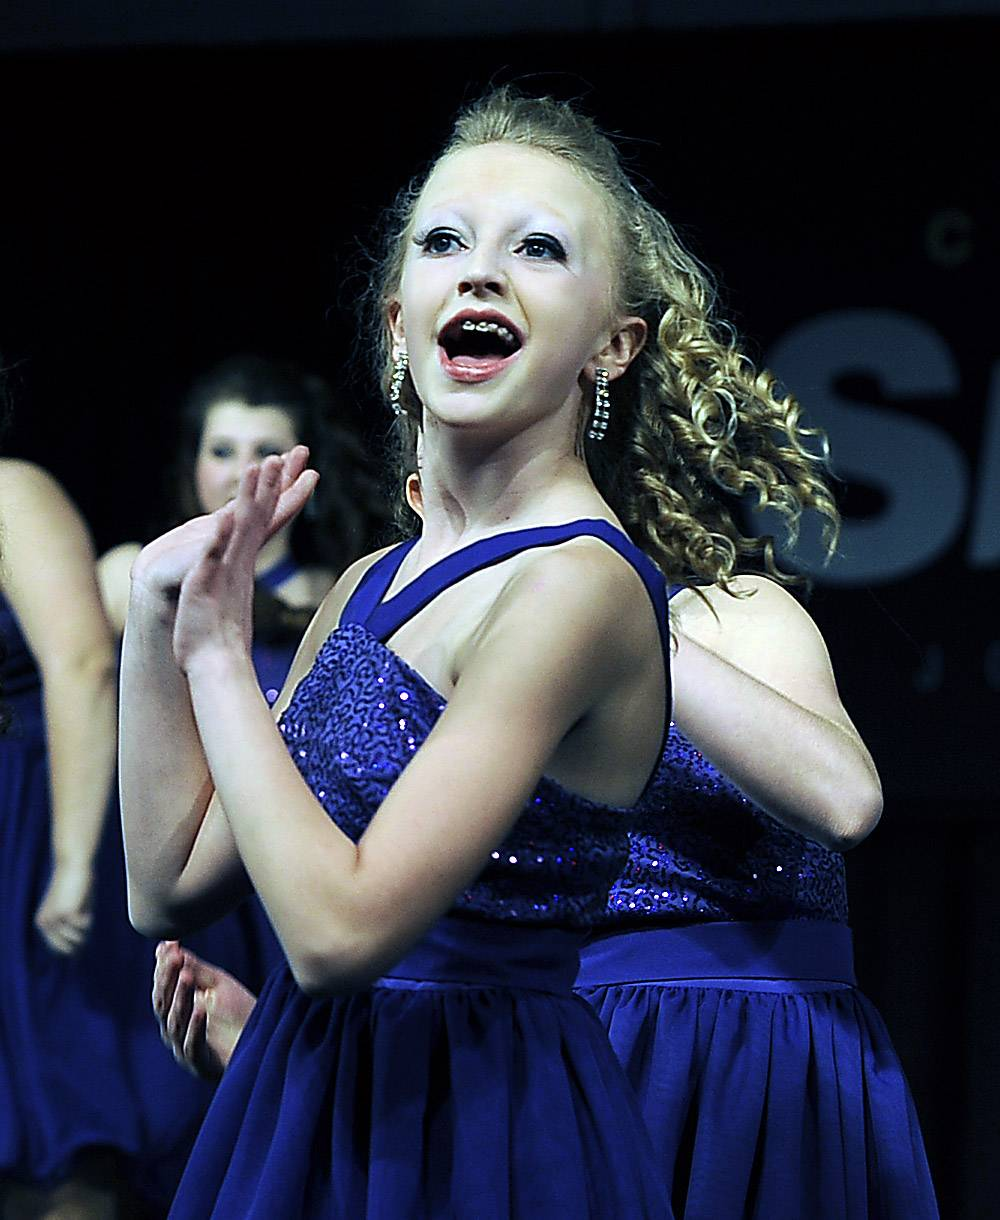 Cassady Chadwell leads Legacy, the Batavia High School show choir, during a performance at the Chicagoland Showcase show choir competition Saturday in Arlington Heights.